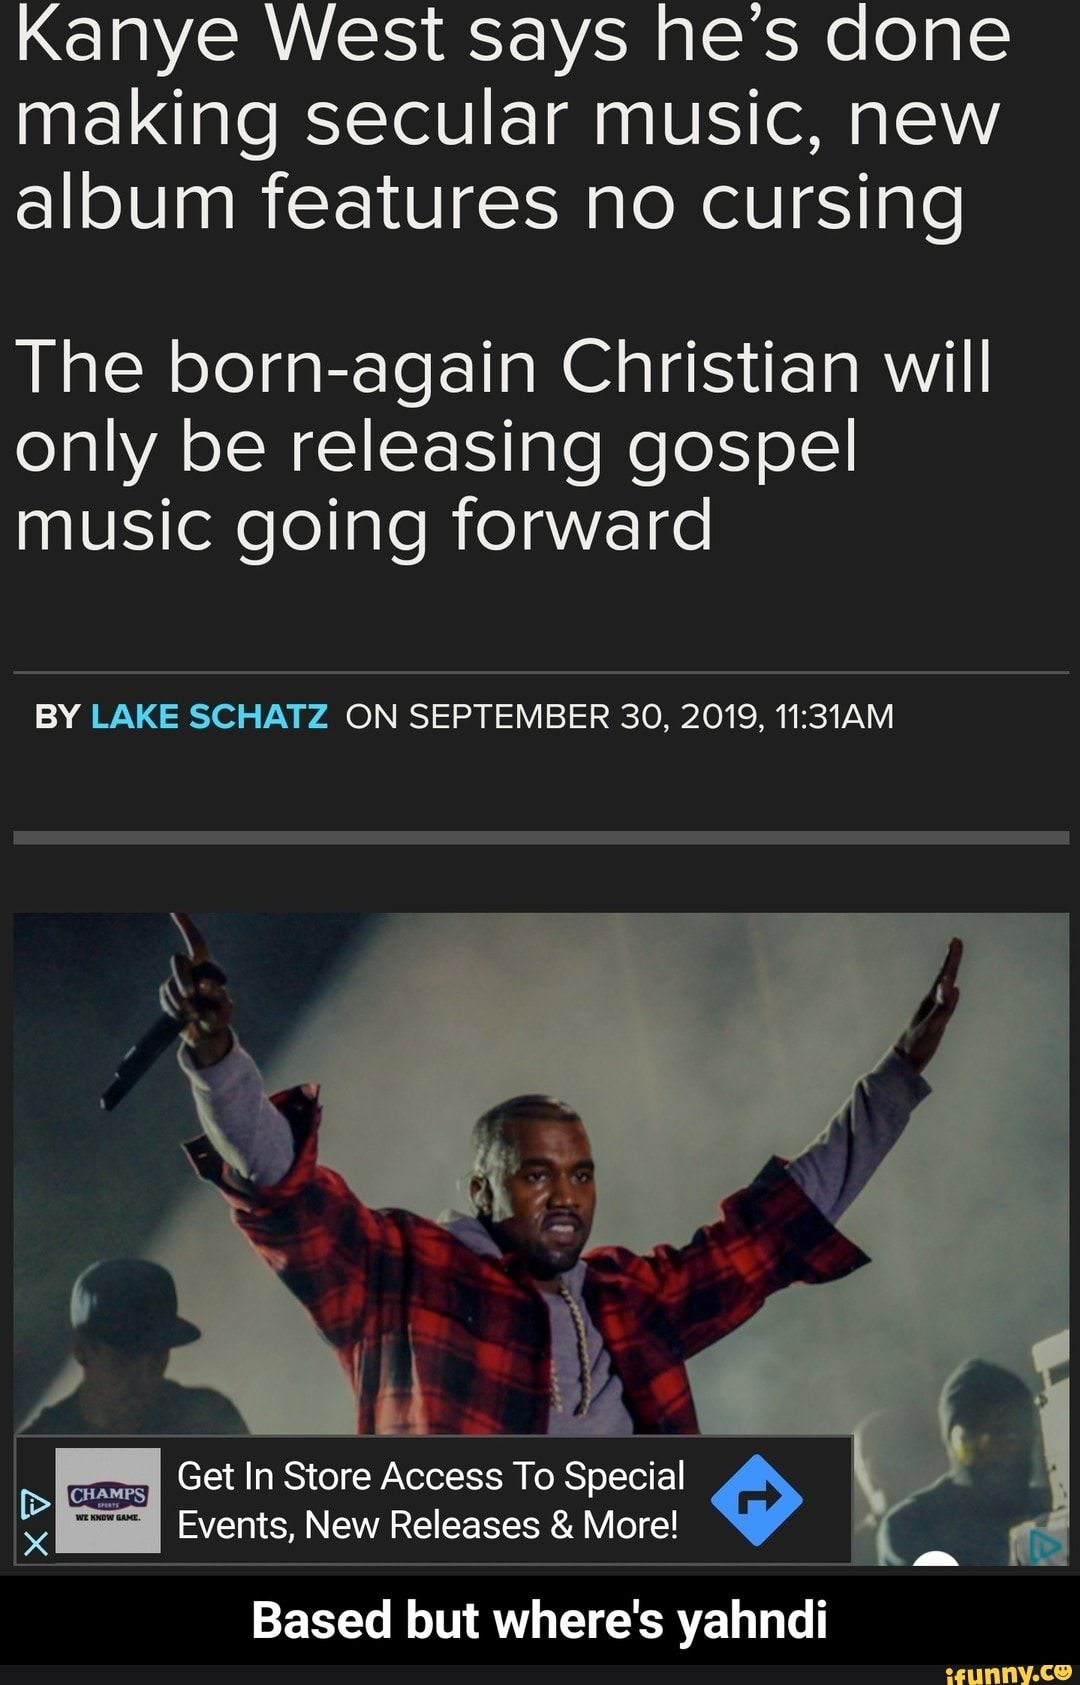 Kanye West says he's done making secular music, new album